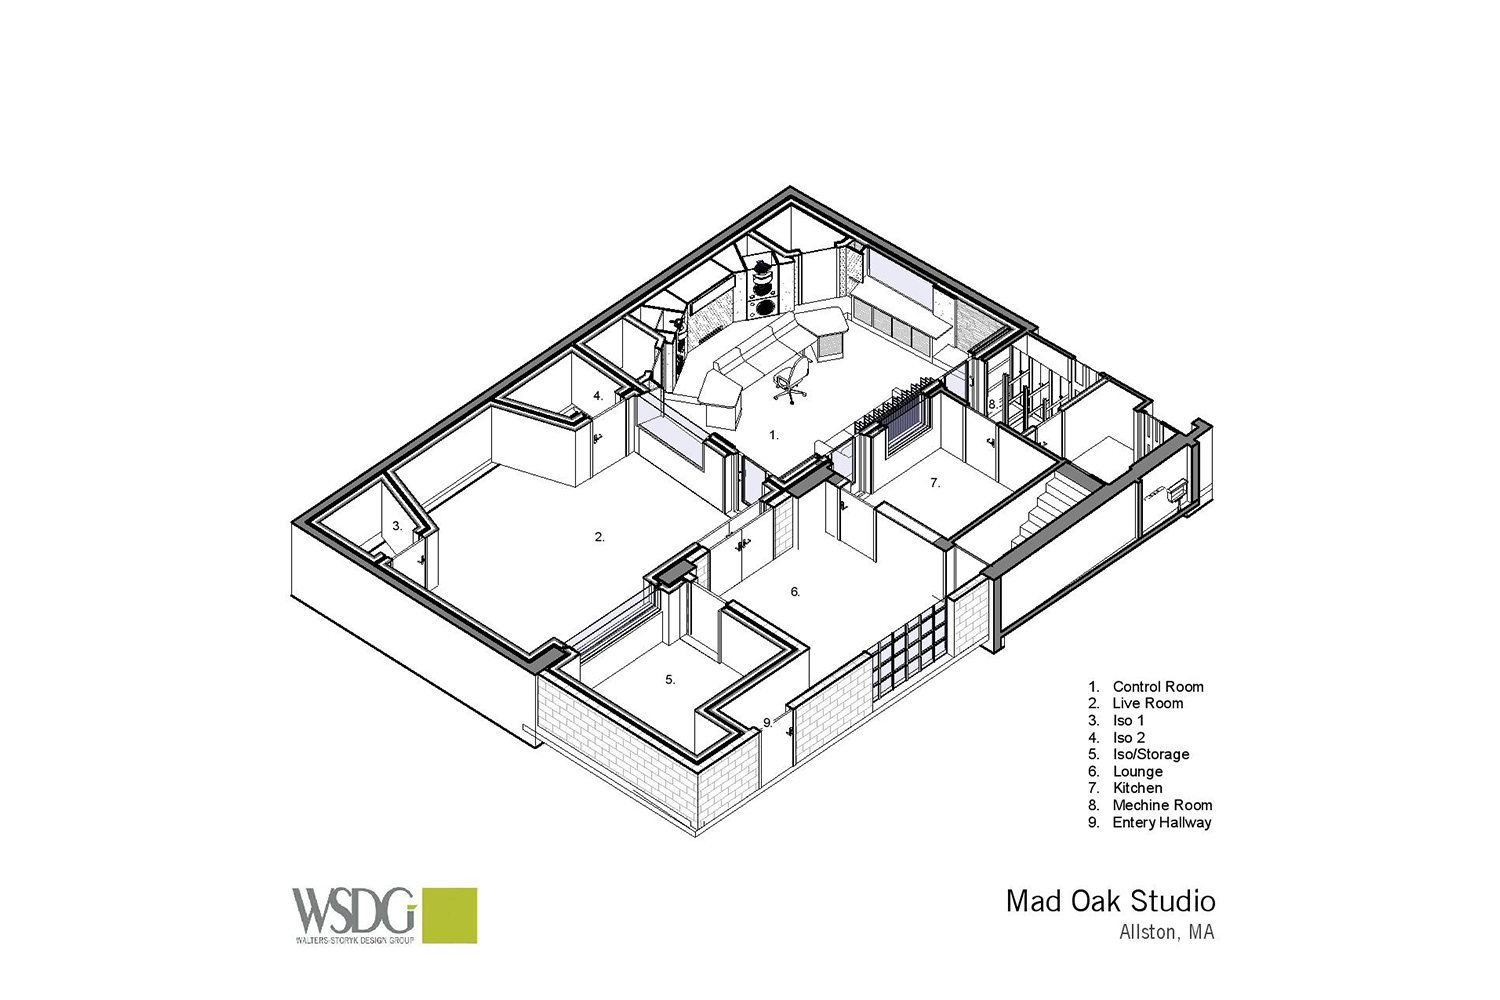 Gear guru studio owner PK Pandey Mad Oak Studios. Beautiful Control Room with Symphonic Acoustics custom speakers. WSDG was the only recording studio design firm considered for this project. Axonometric view.